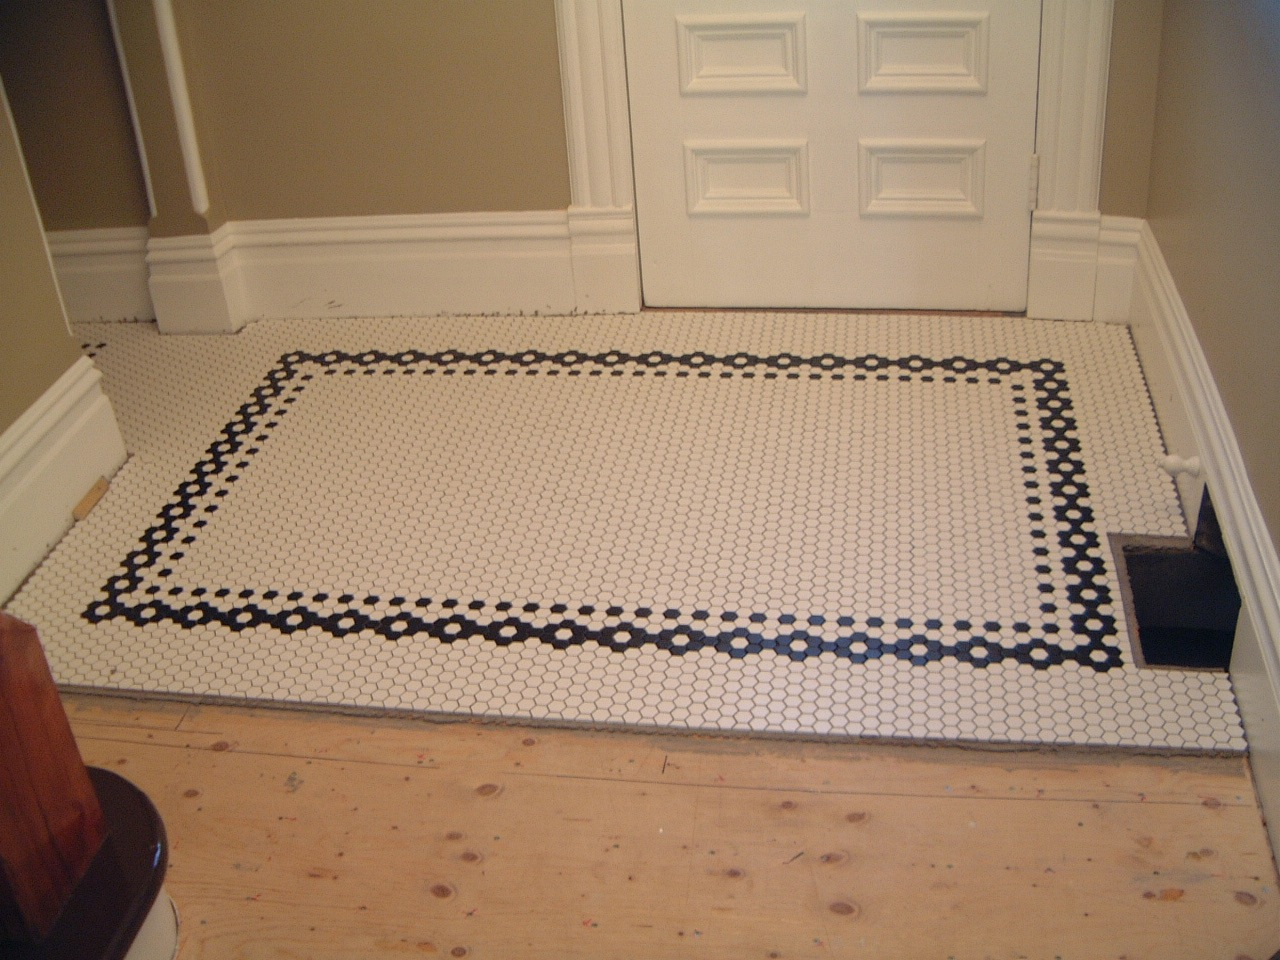 Creative tile flooring patterns design ideas inspiring bathroom flooring design ideas using dailygadgetfo Choice Image